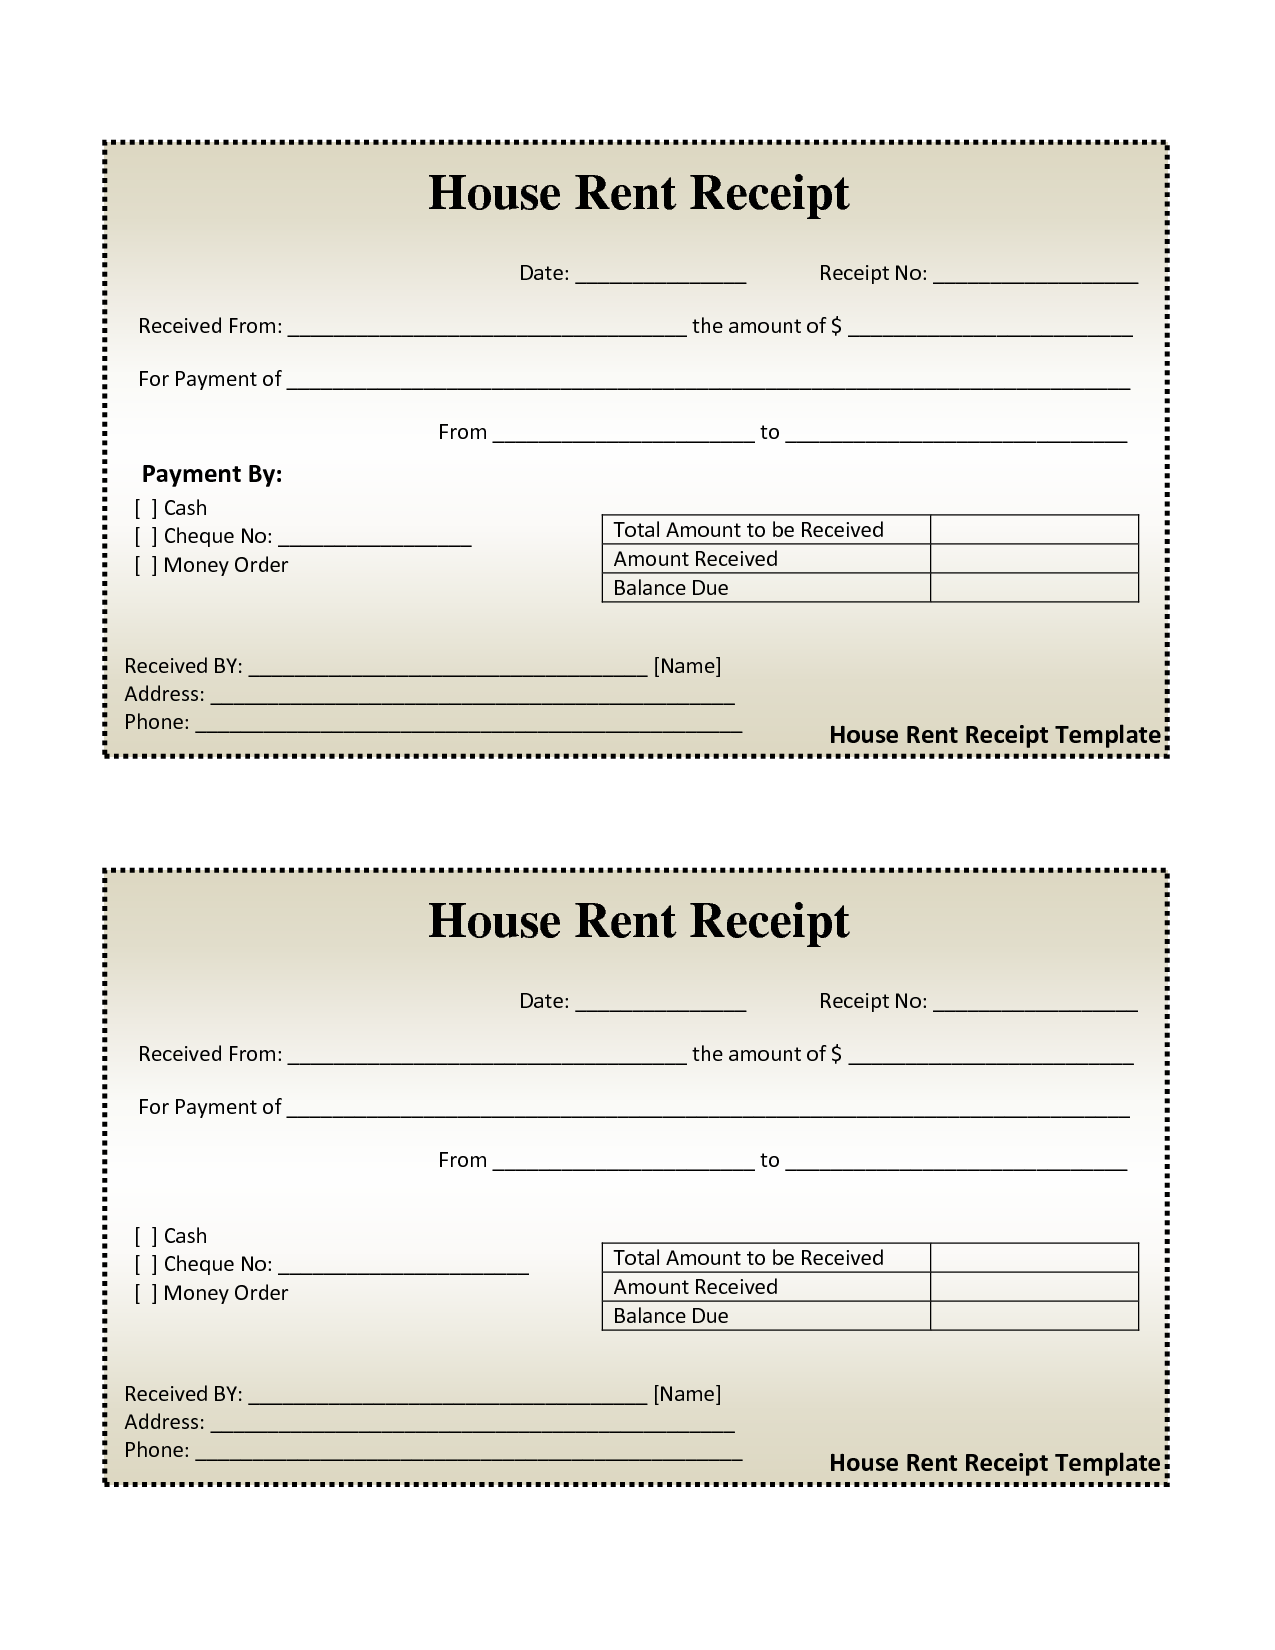 Free Rent Receipts New Free House Rental Invoice  House Rent Receipt Template  Doc  Rent .